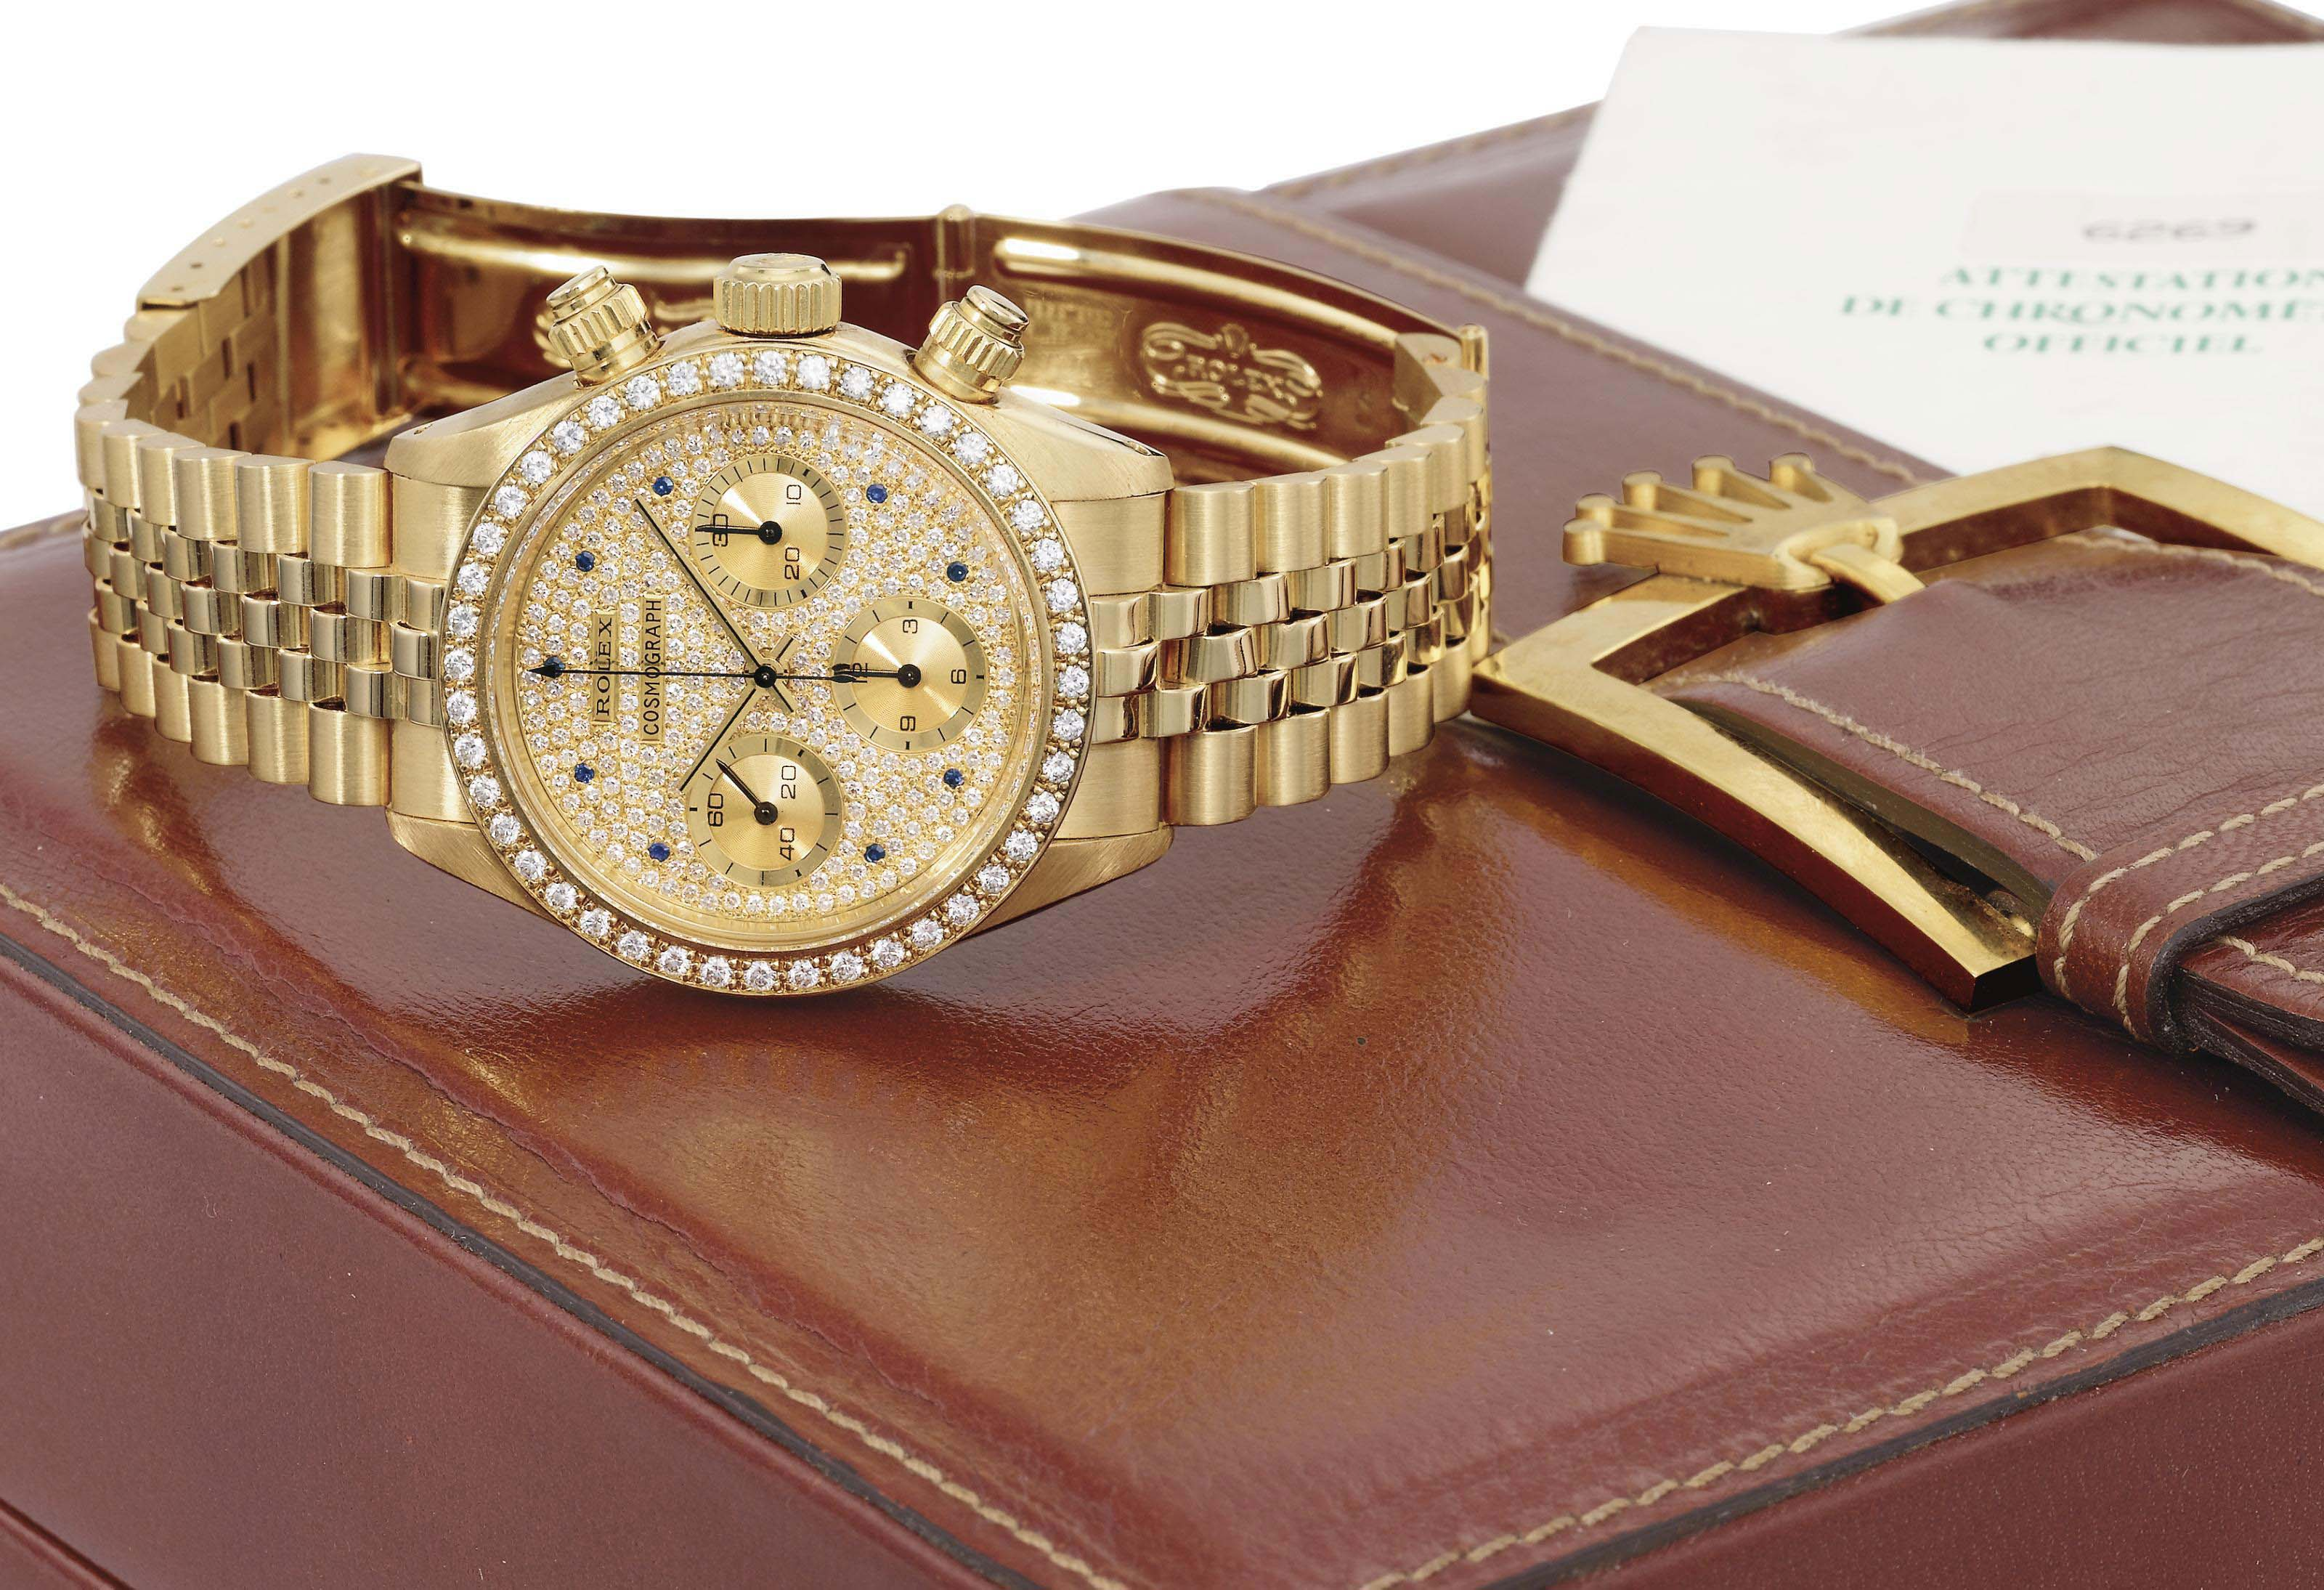 Rolex. An extremely rare and attractive 18K gold, diamond and sapphire-set chronograph wristwatch with bracelet<BR> SIGNED ROLEX, COSMOGRAPH, REF. 6269, CASE NO. 9'676'144, MANUFACTURED IN 1988<BR>